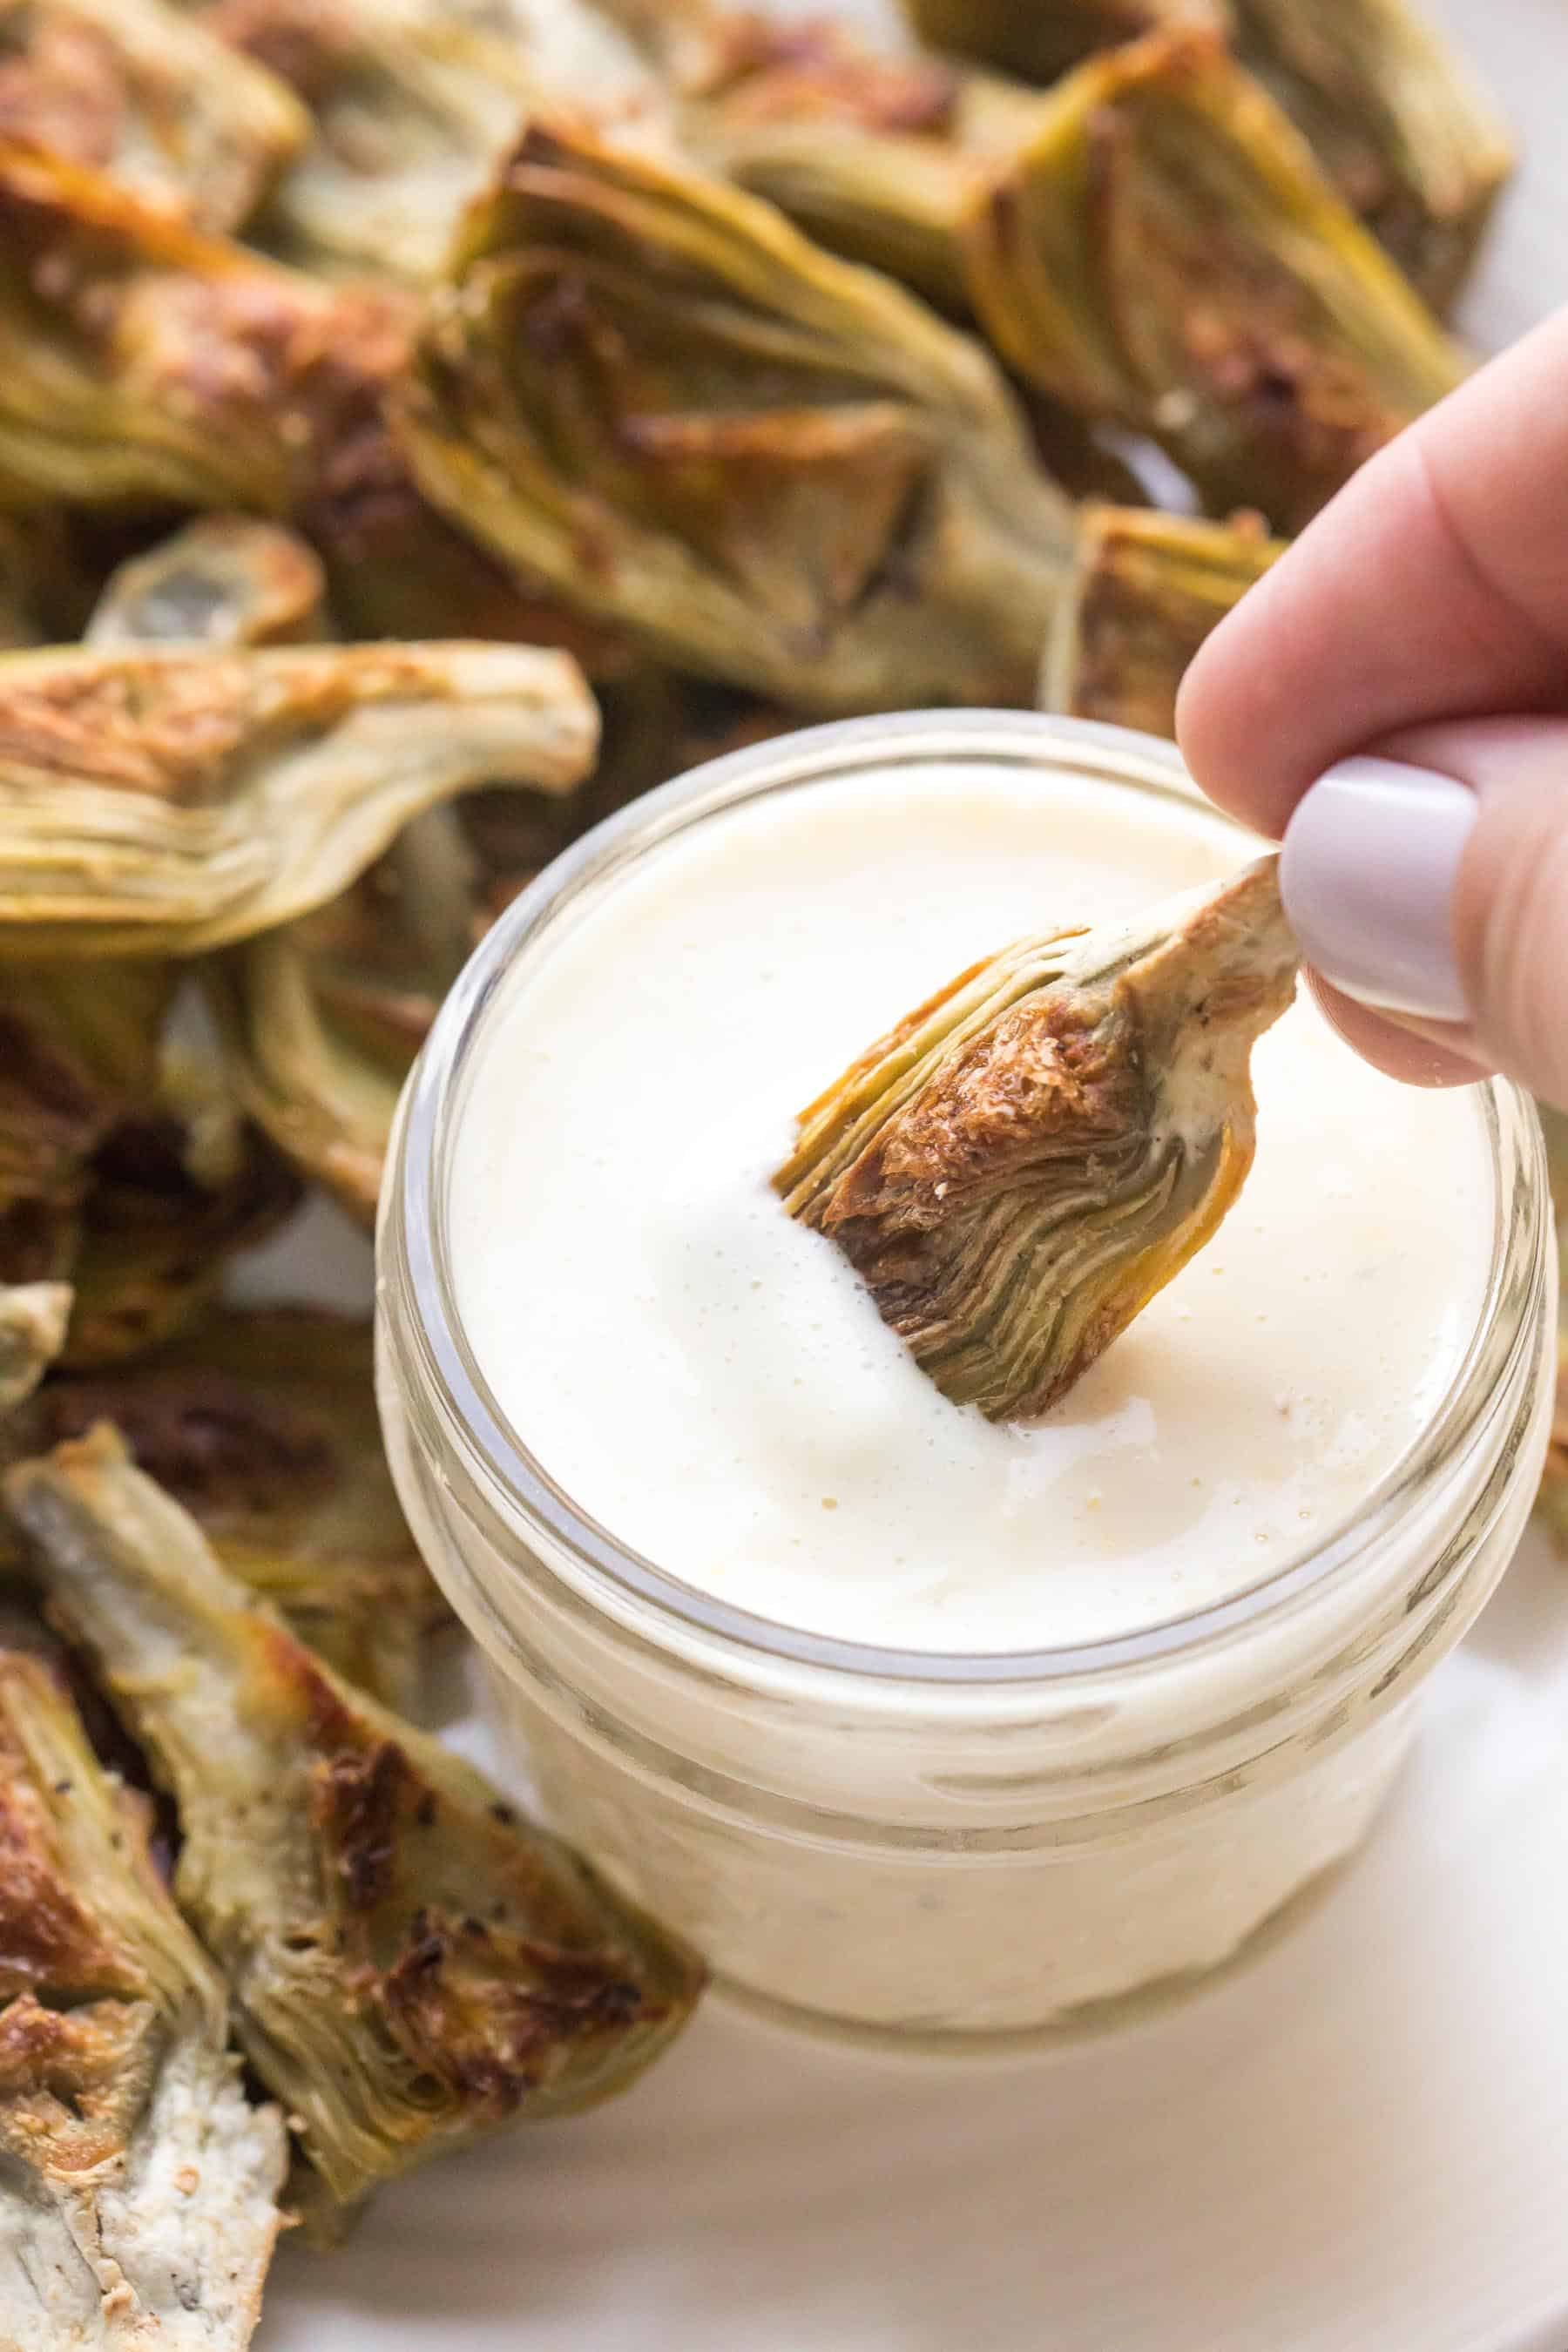 Roasted artichokes on a white plate with white lemon garlic aioli dipping sauce